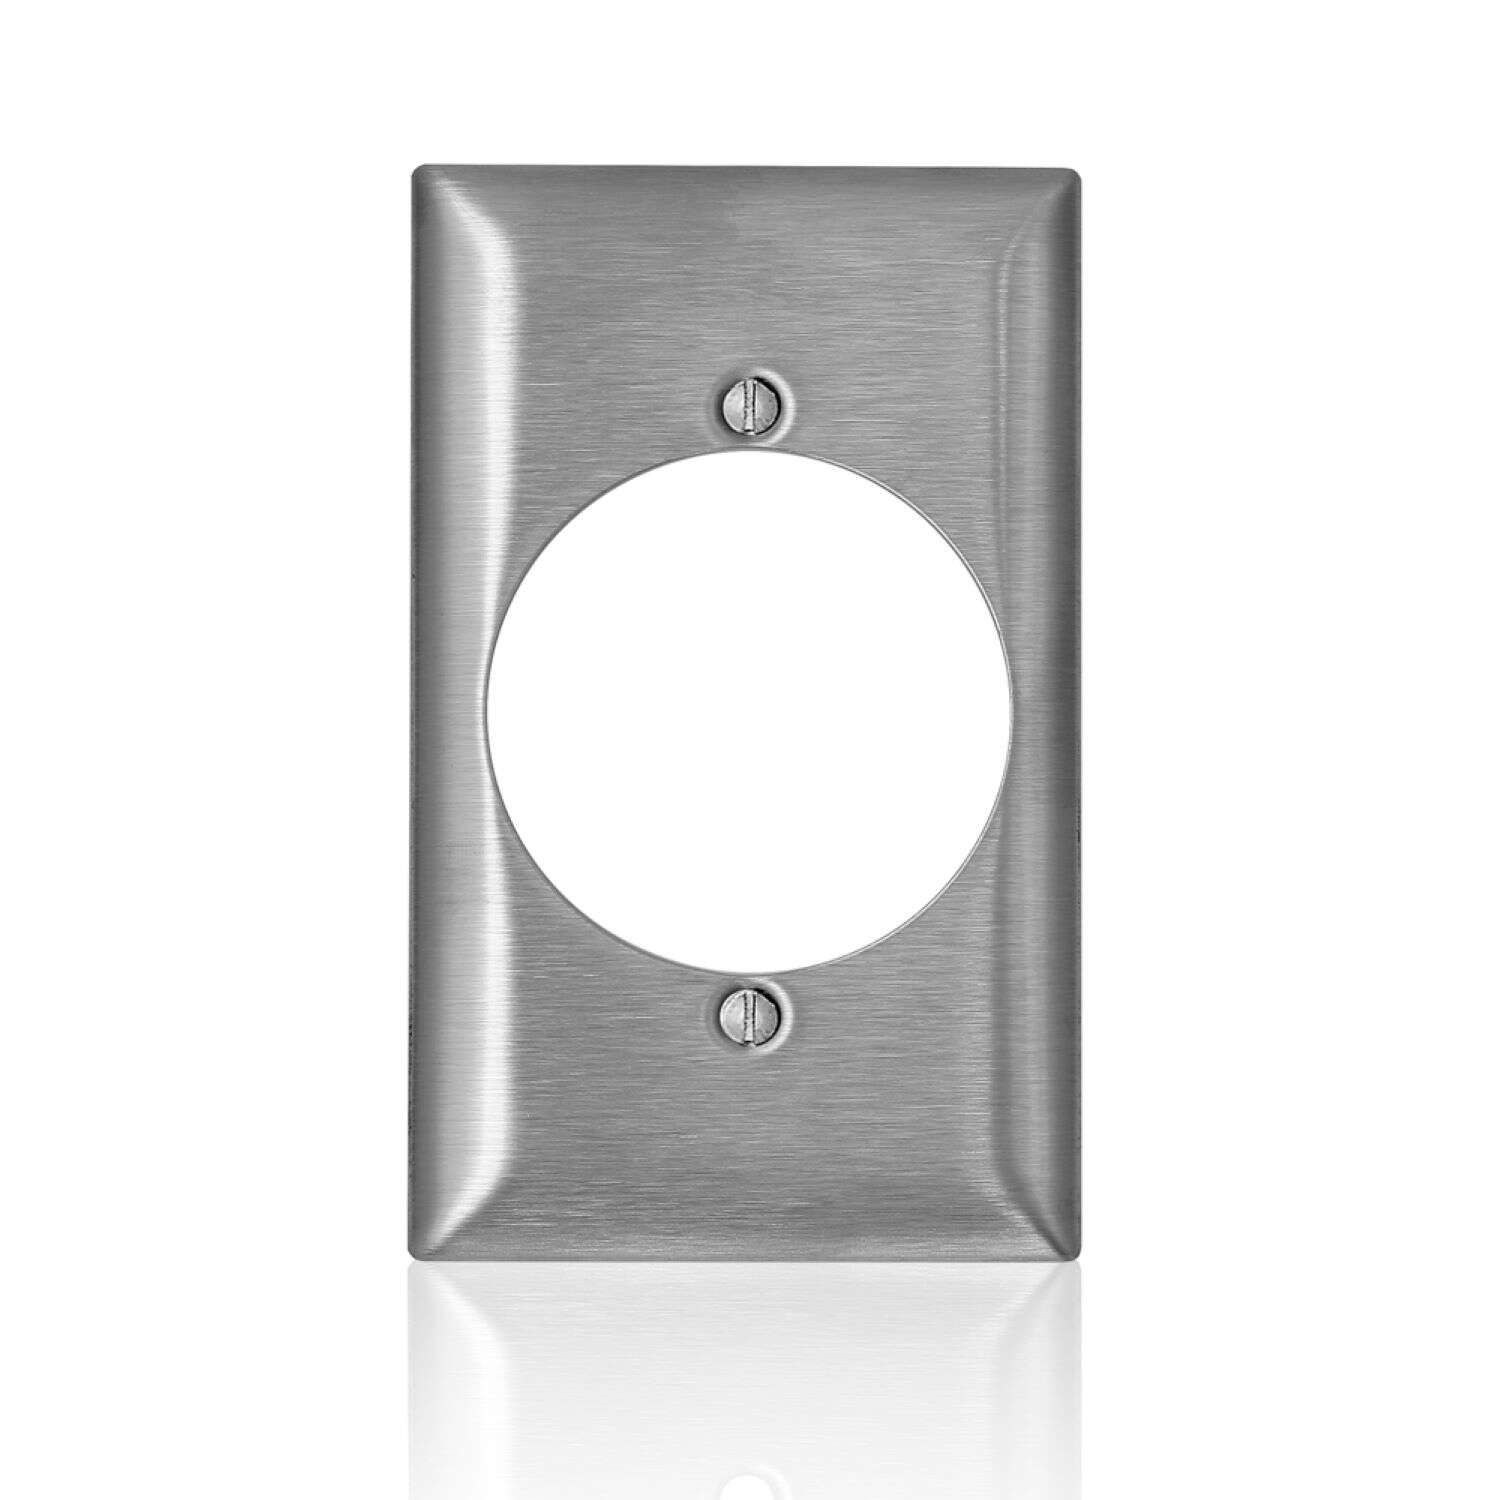 Leviton  C-Series  Stainless Steel  1 gang Metal  Receptacle  Wall Plate  1 pk